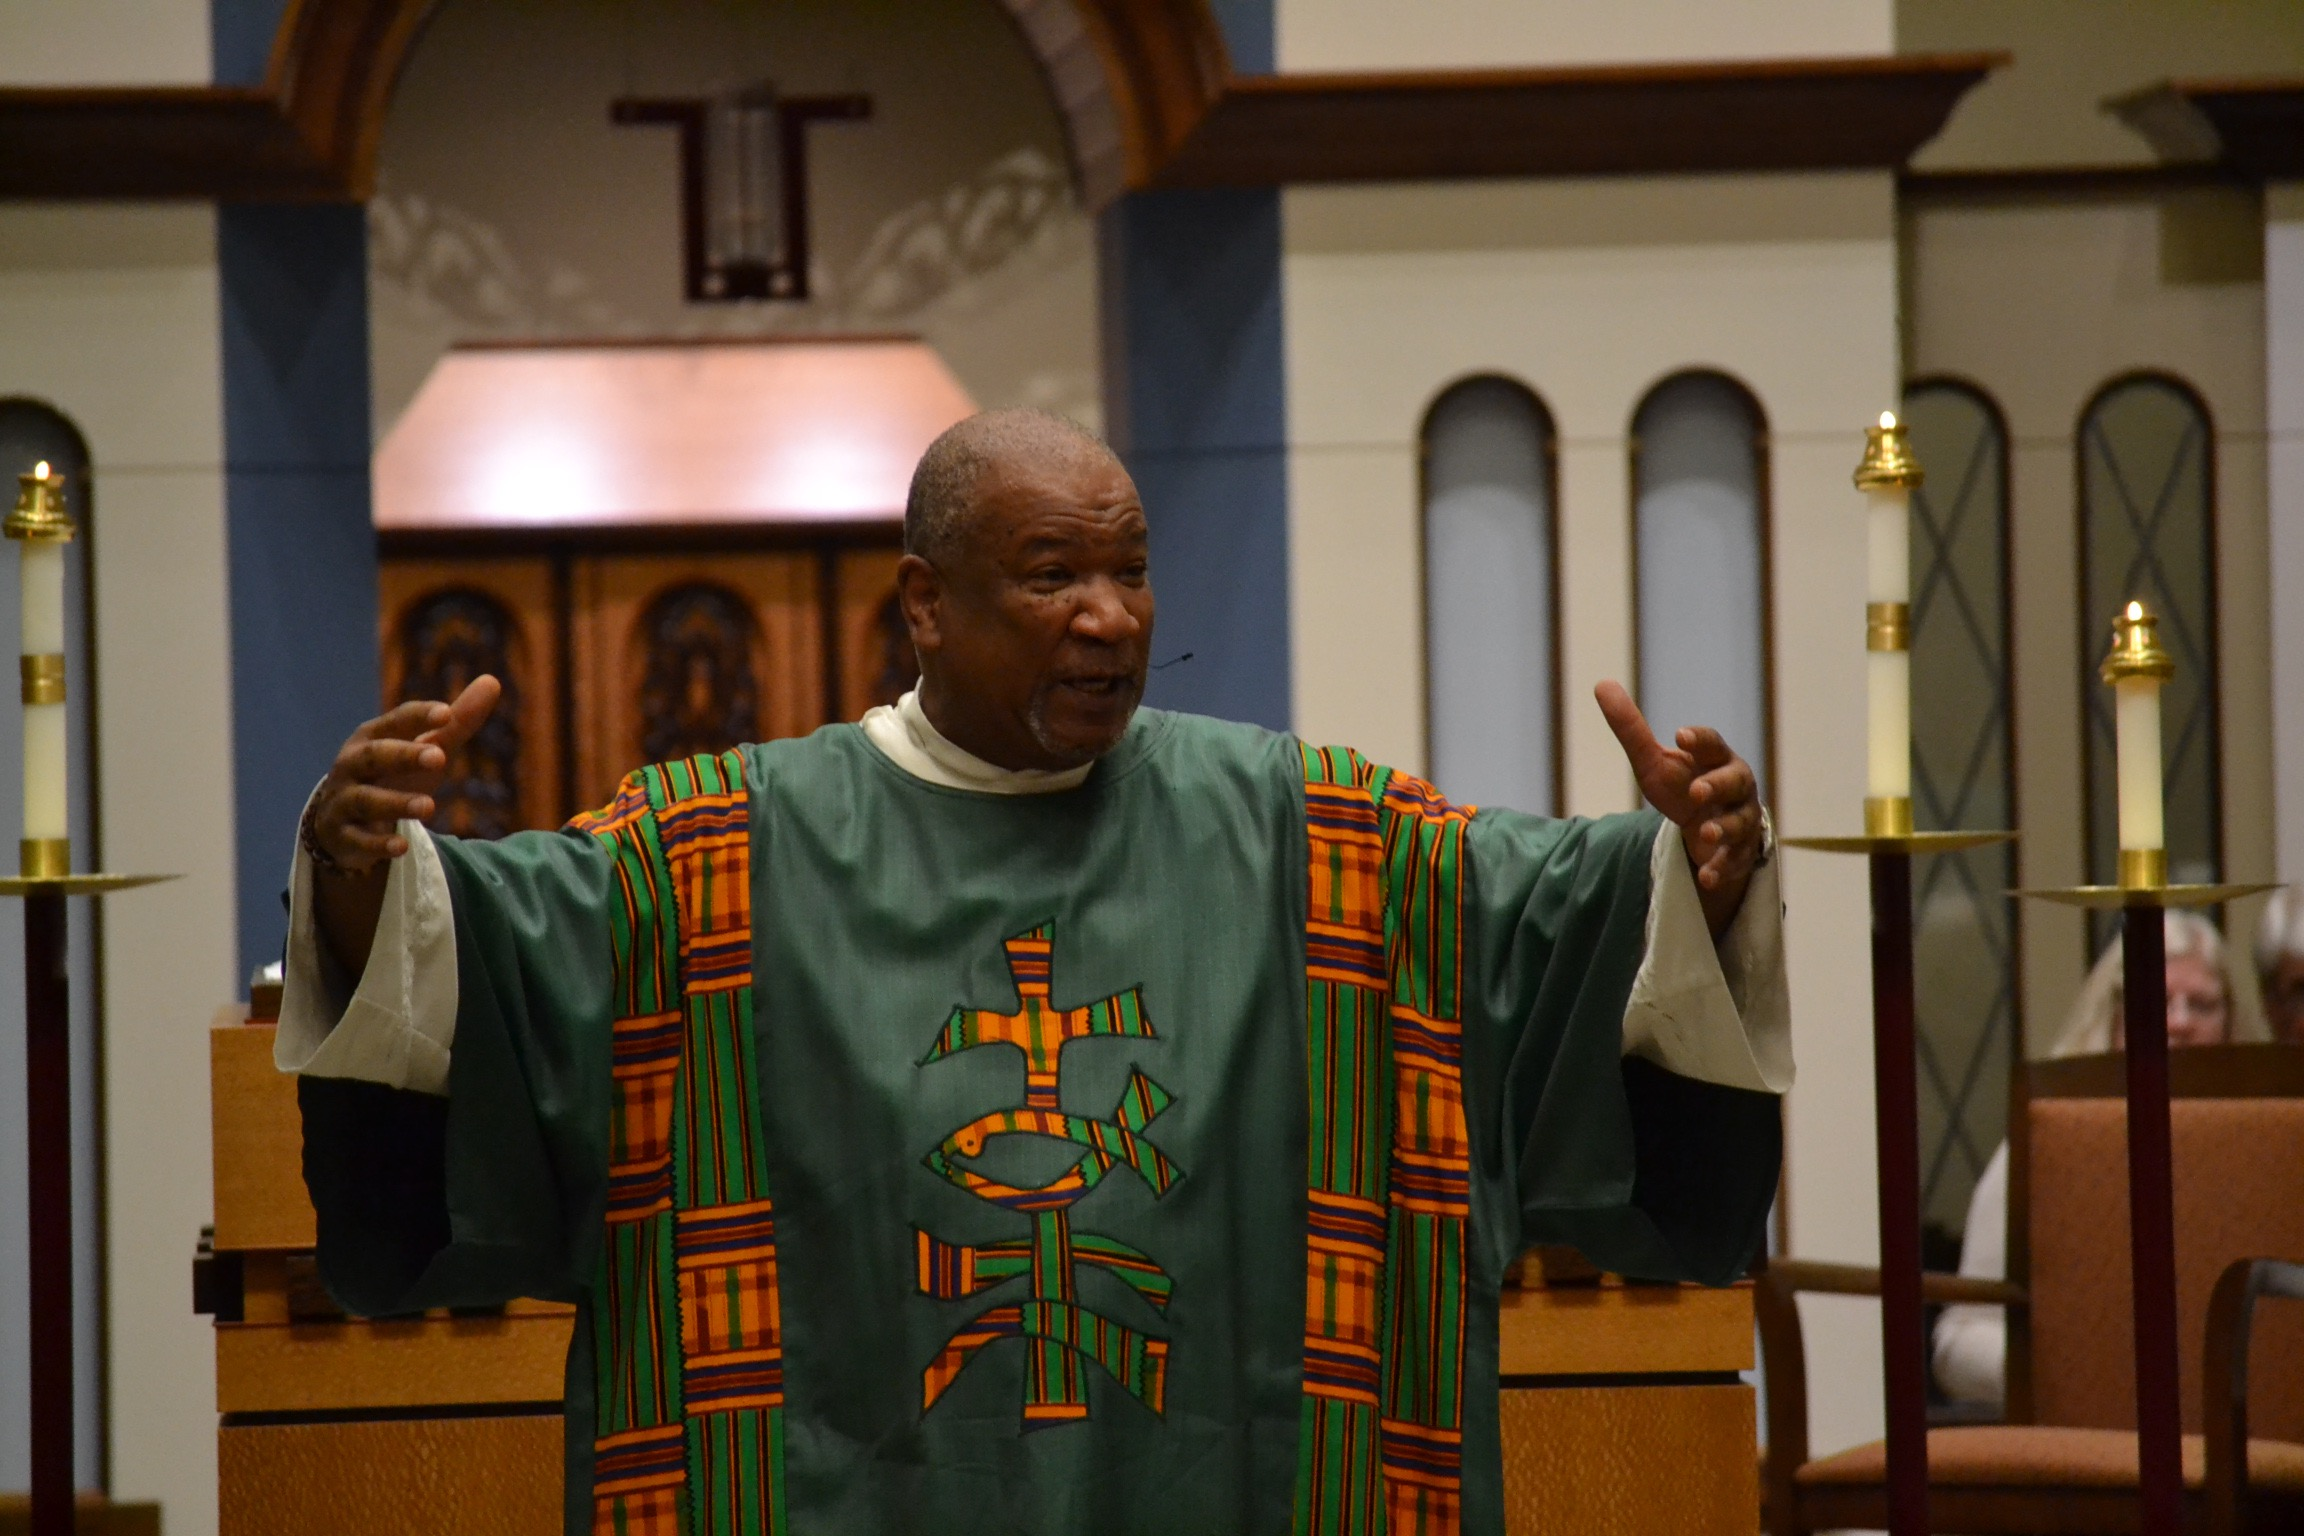 Deacon Royce Winters preaching at the Black Catholic History Mass at the University of Dayton (CT Photo/Greg Hartman)